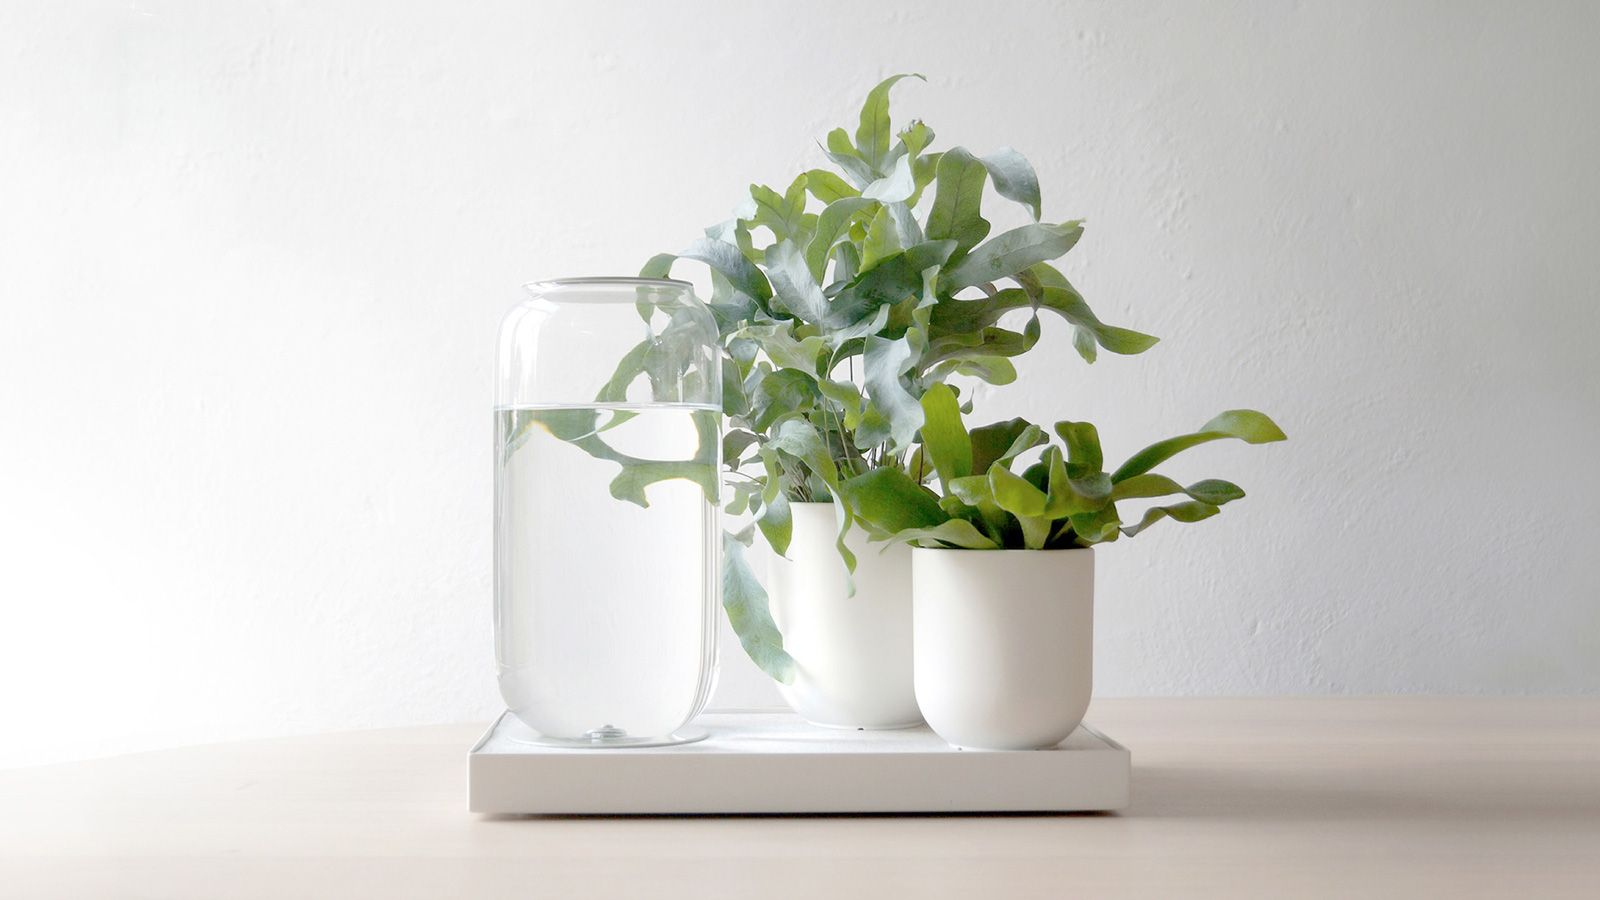 Plant Aesthetic Wallpapers - Top Free Plant Aesthetic ...